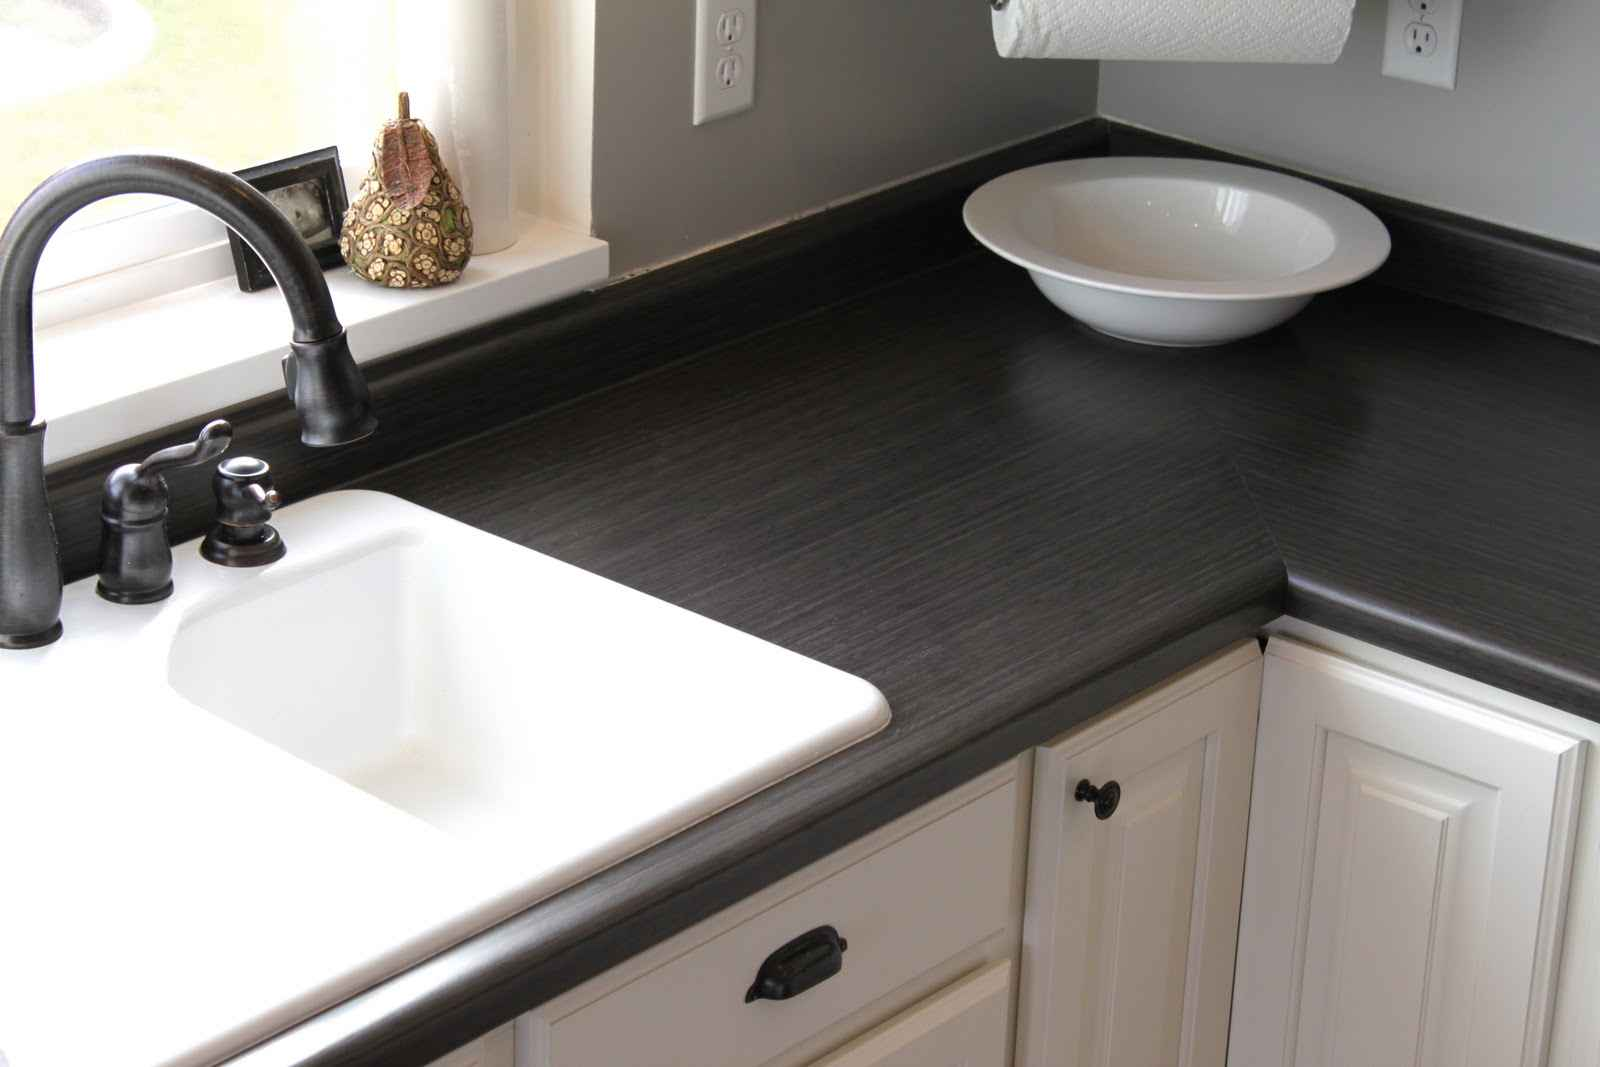 Cheap Countertop Options Best Solution To Get Stylish Kitchen Ideas In A Less Expensive Way